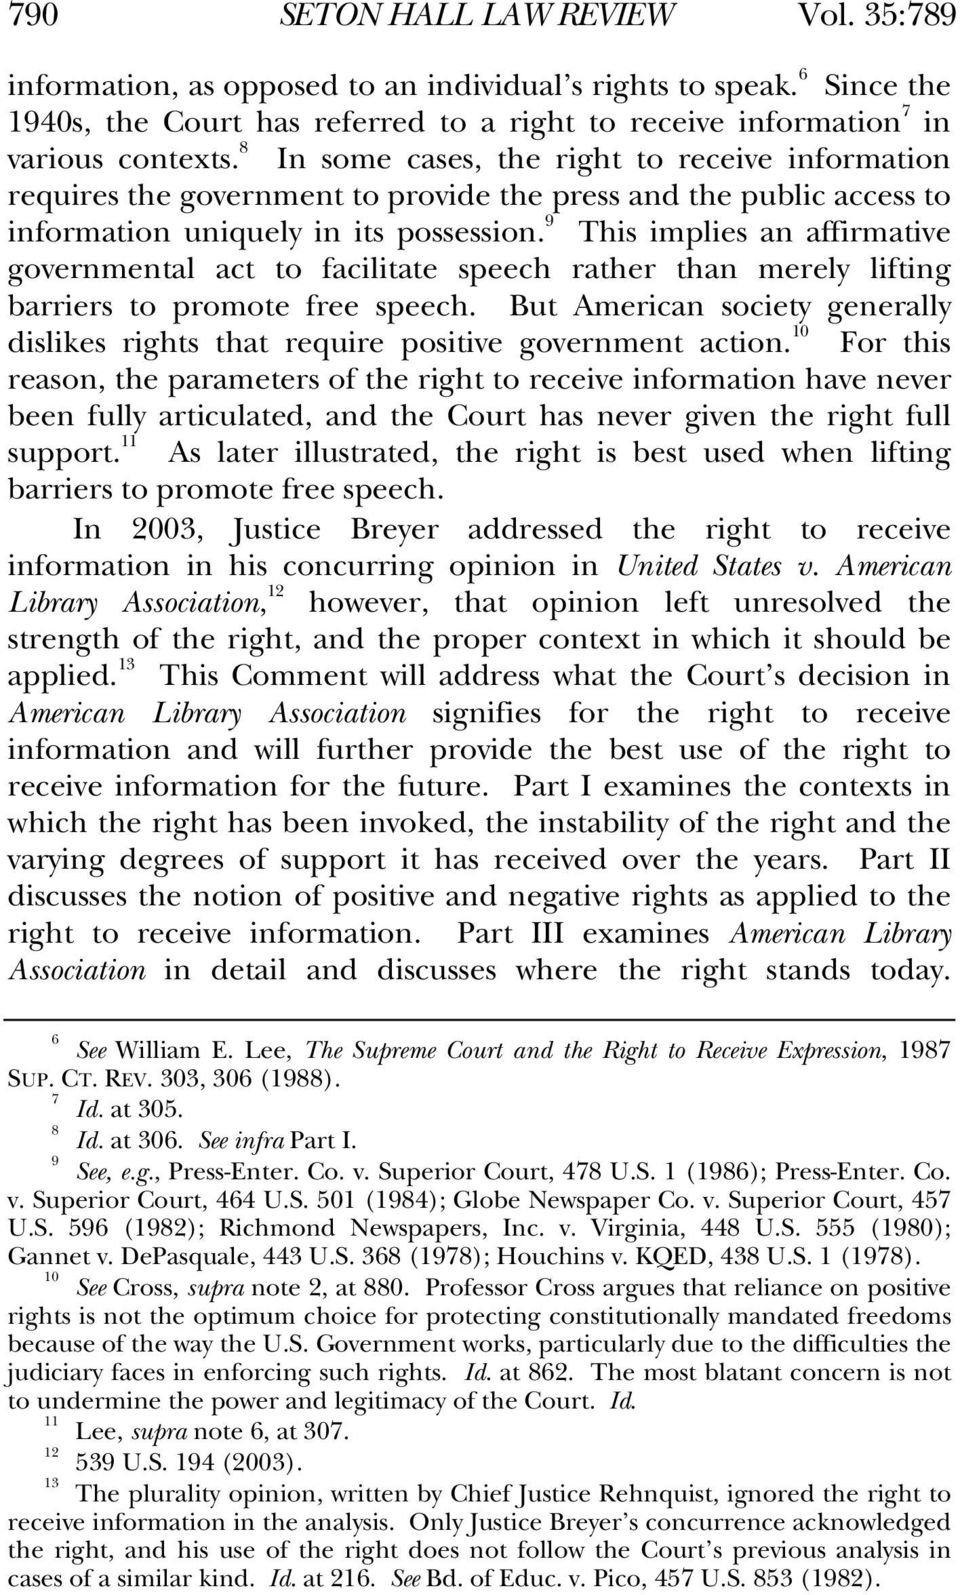 9 This implies an affirmative governmental act to facilitate speech rather than merely lifting barriers to promote free speech.